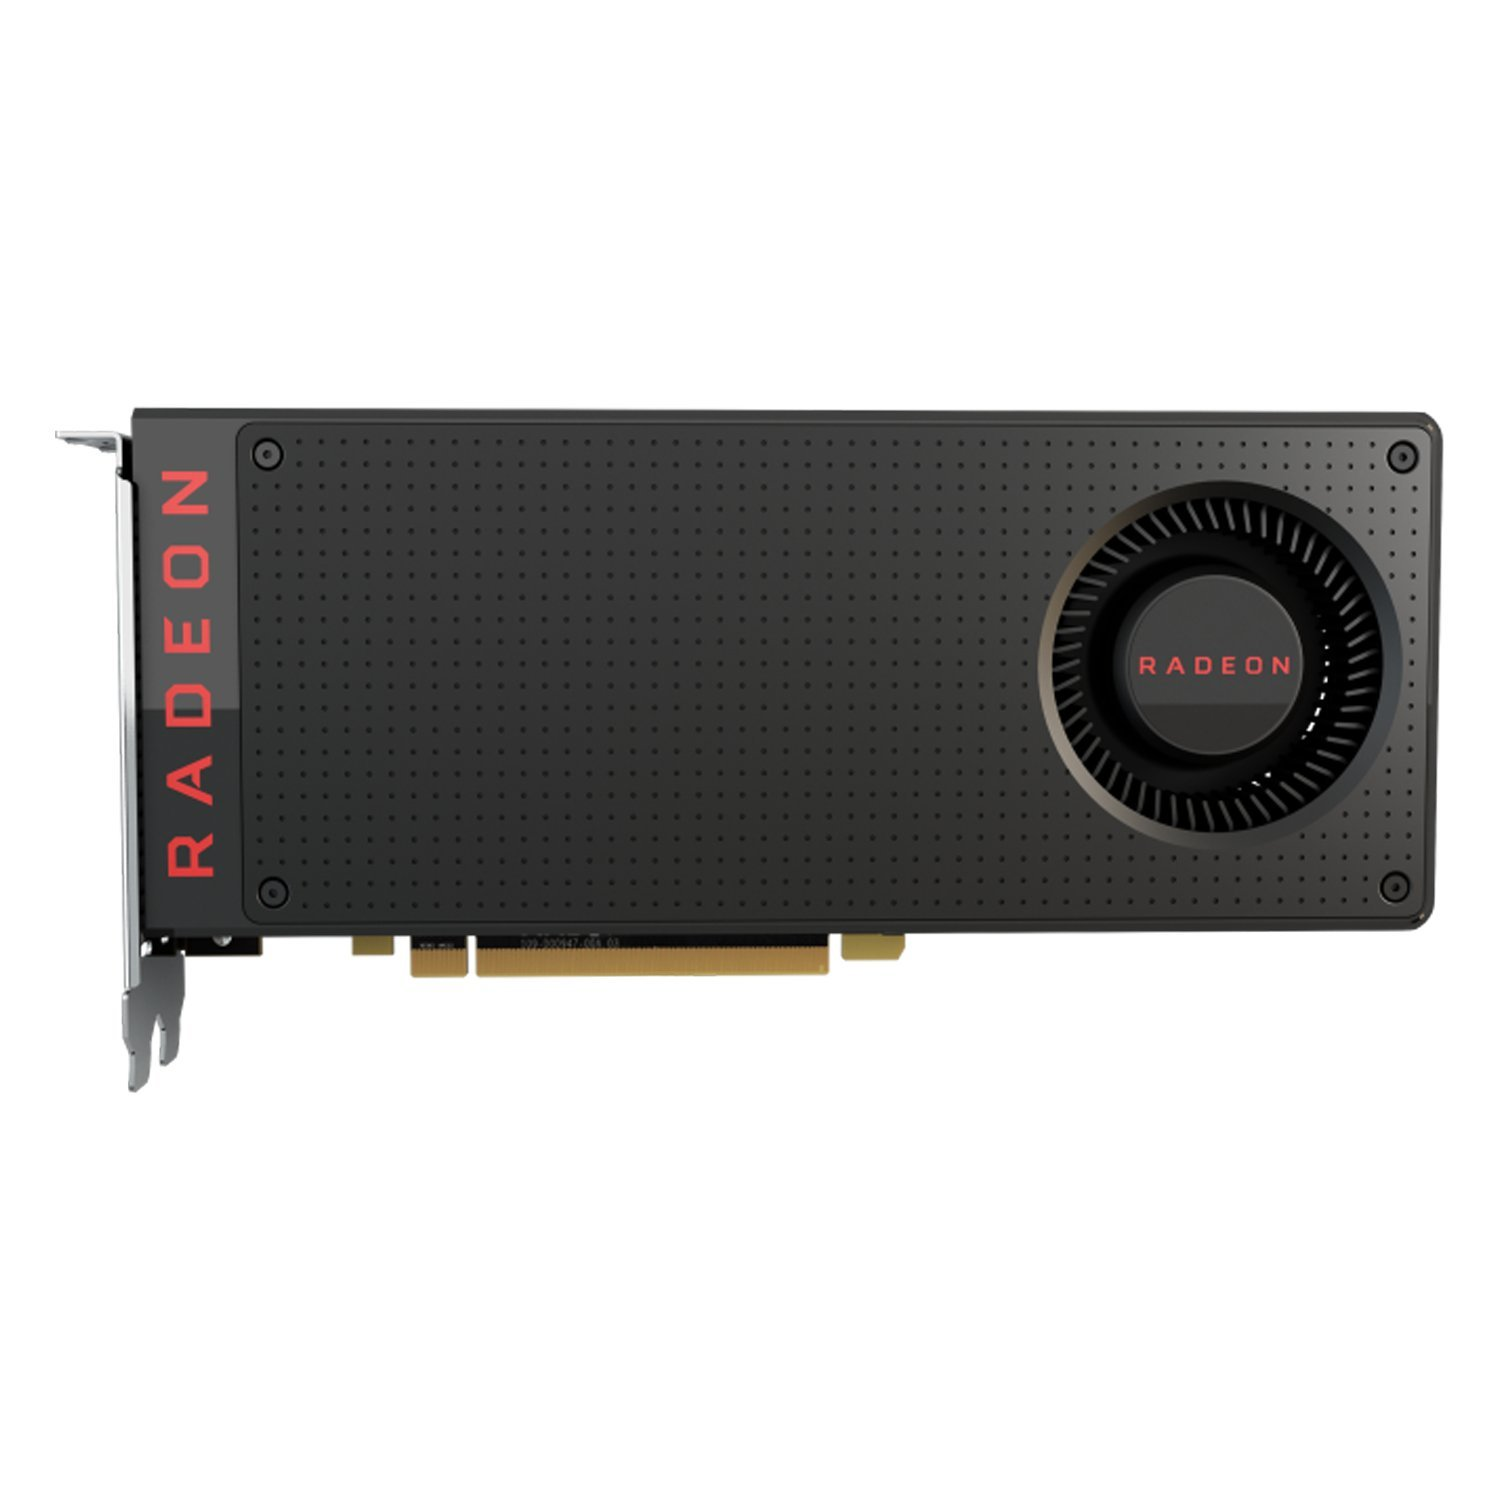 Used SAPPHIRE Radeon RX 570 4G 4GB RX570 256bit GDDR5 PCI Express 3.0 desktop gaming graphics cards video card(China)